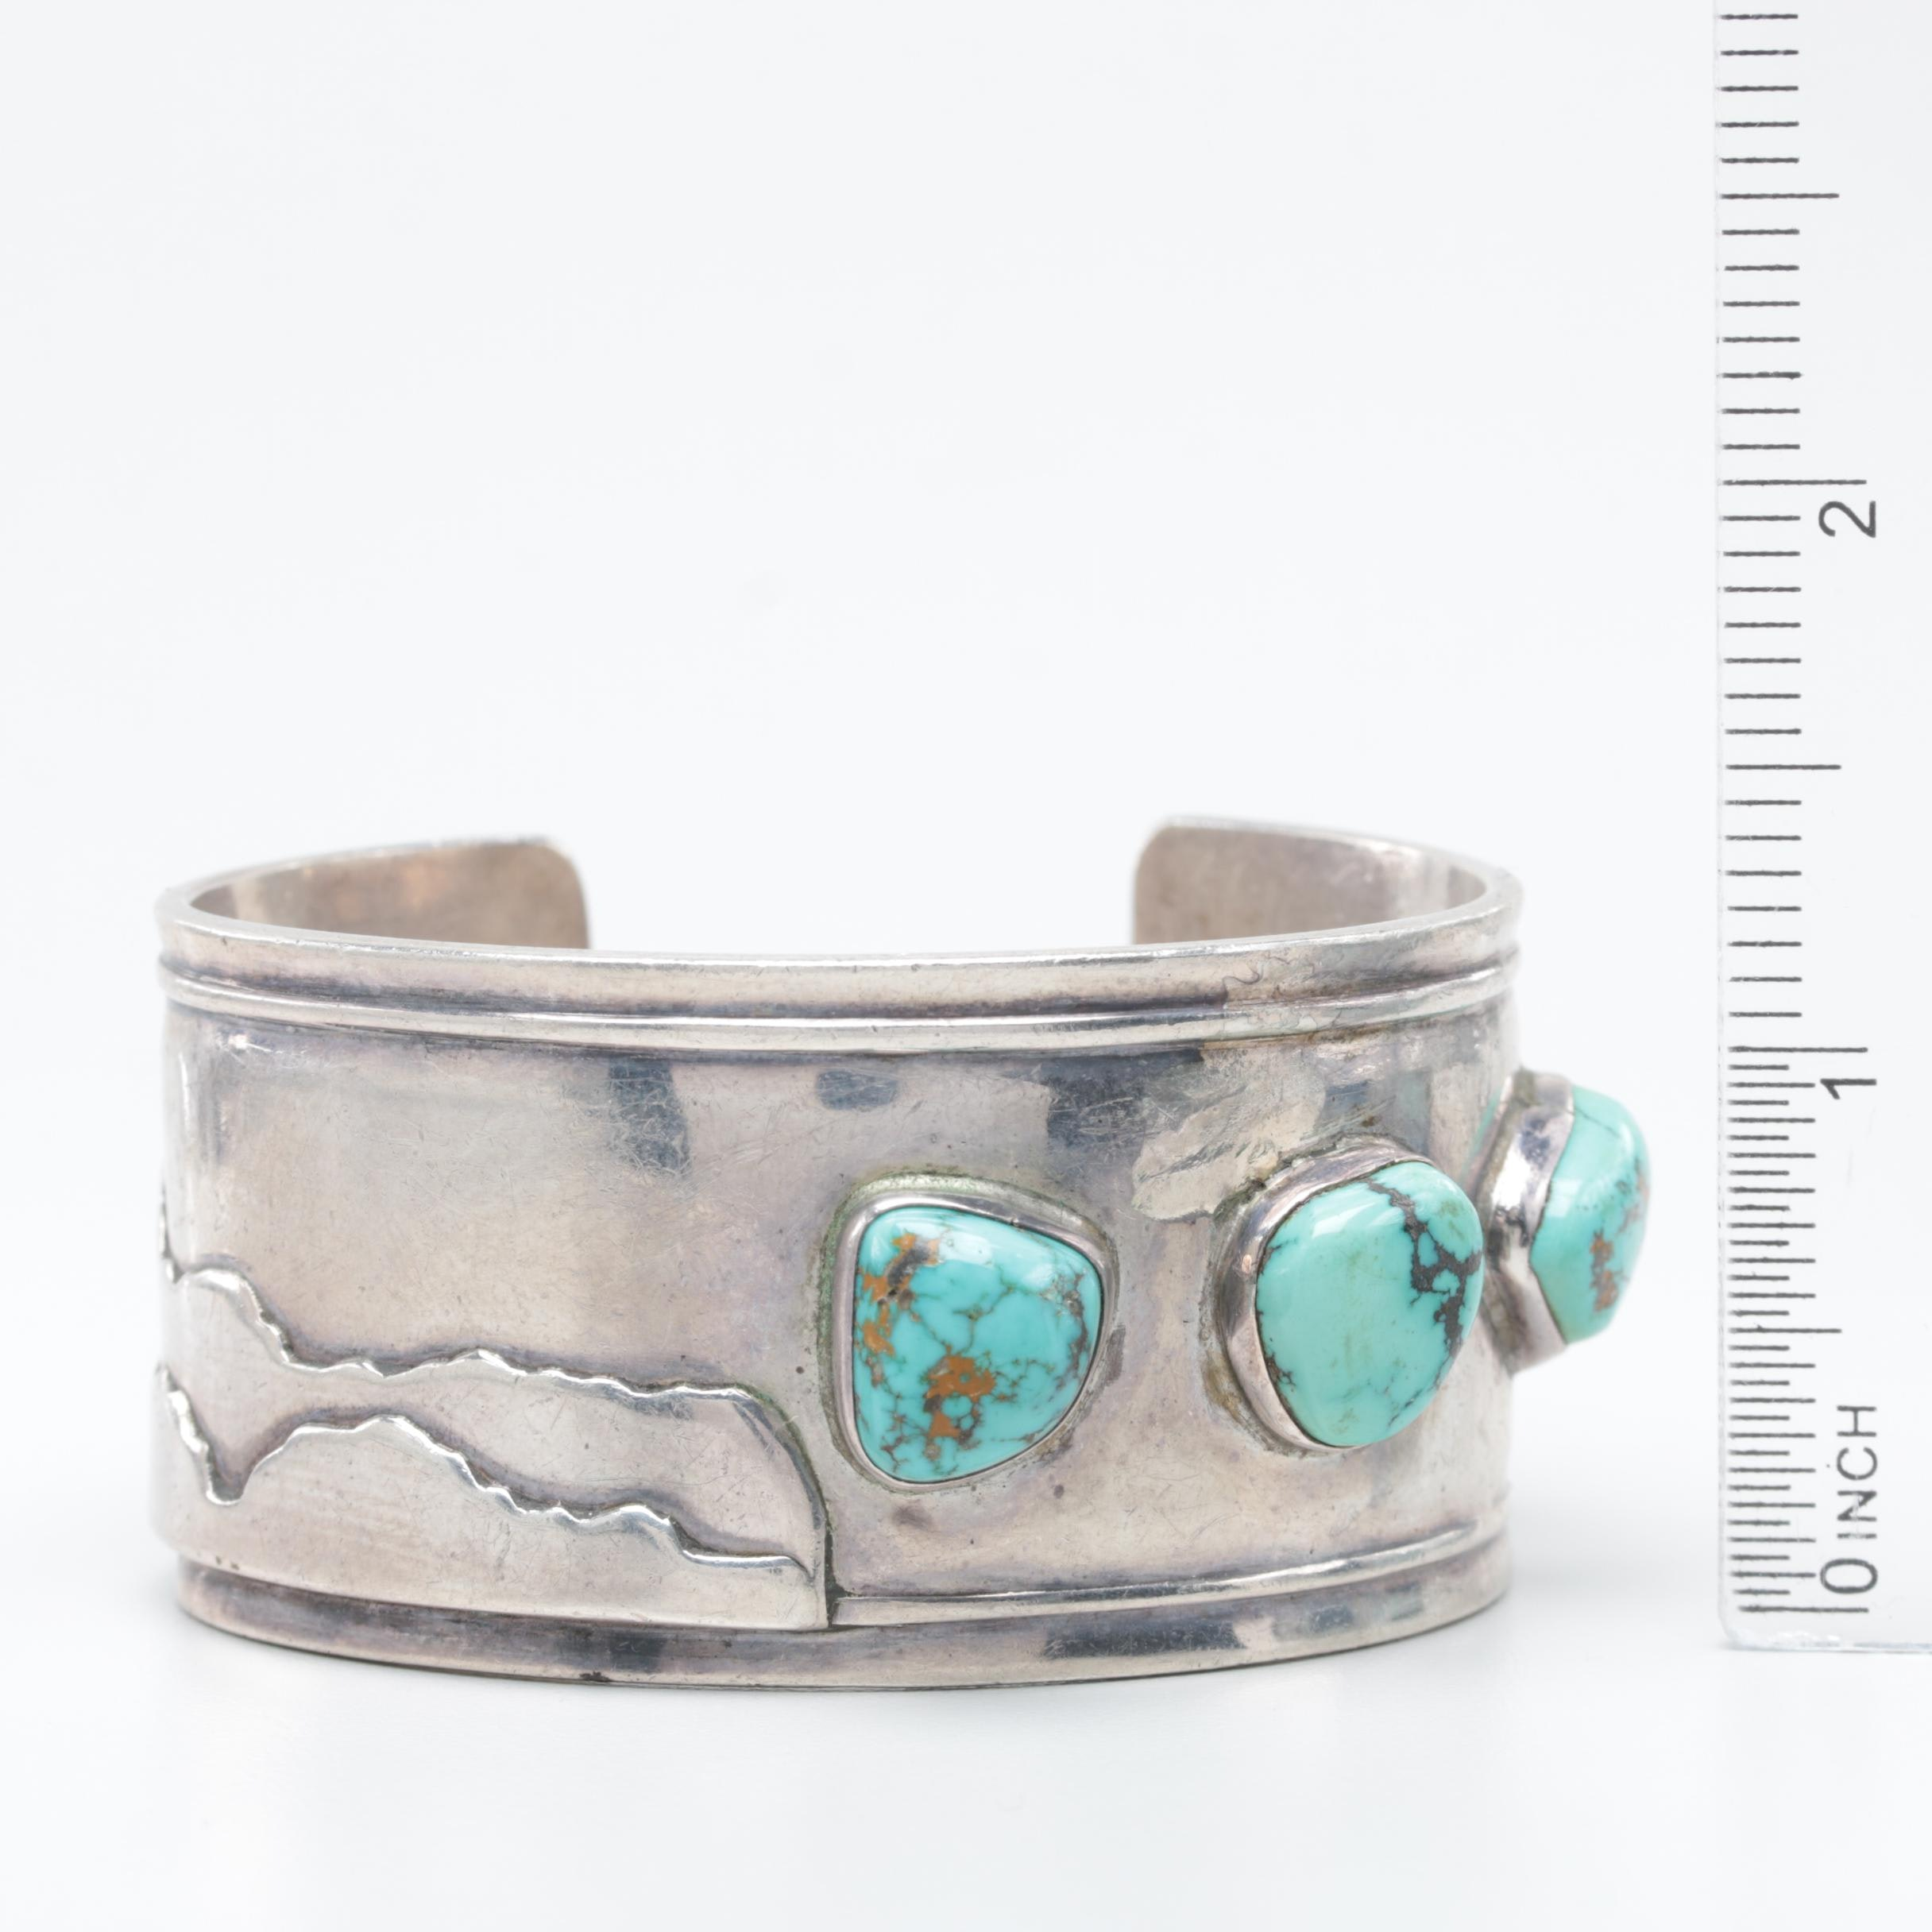 Southwestern Style George Stumpff Sterling Silver Turquoise Cuff Bracelet